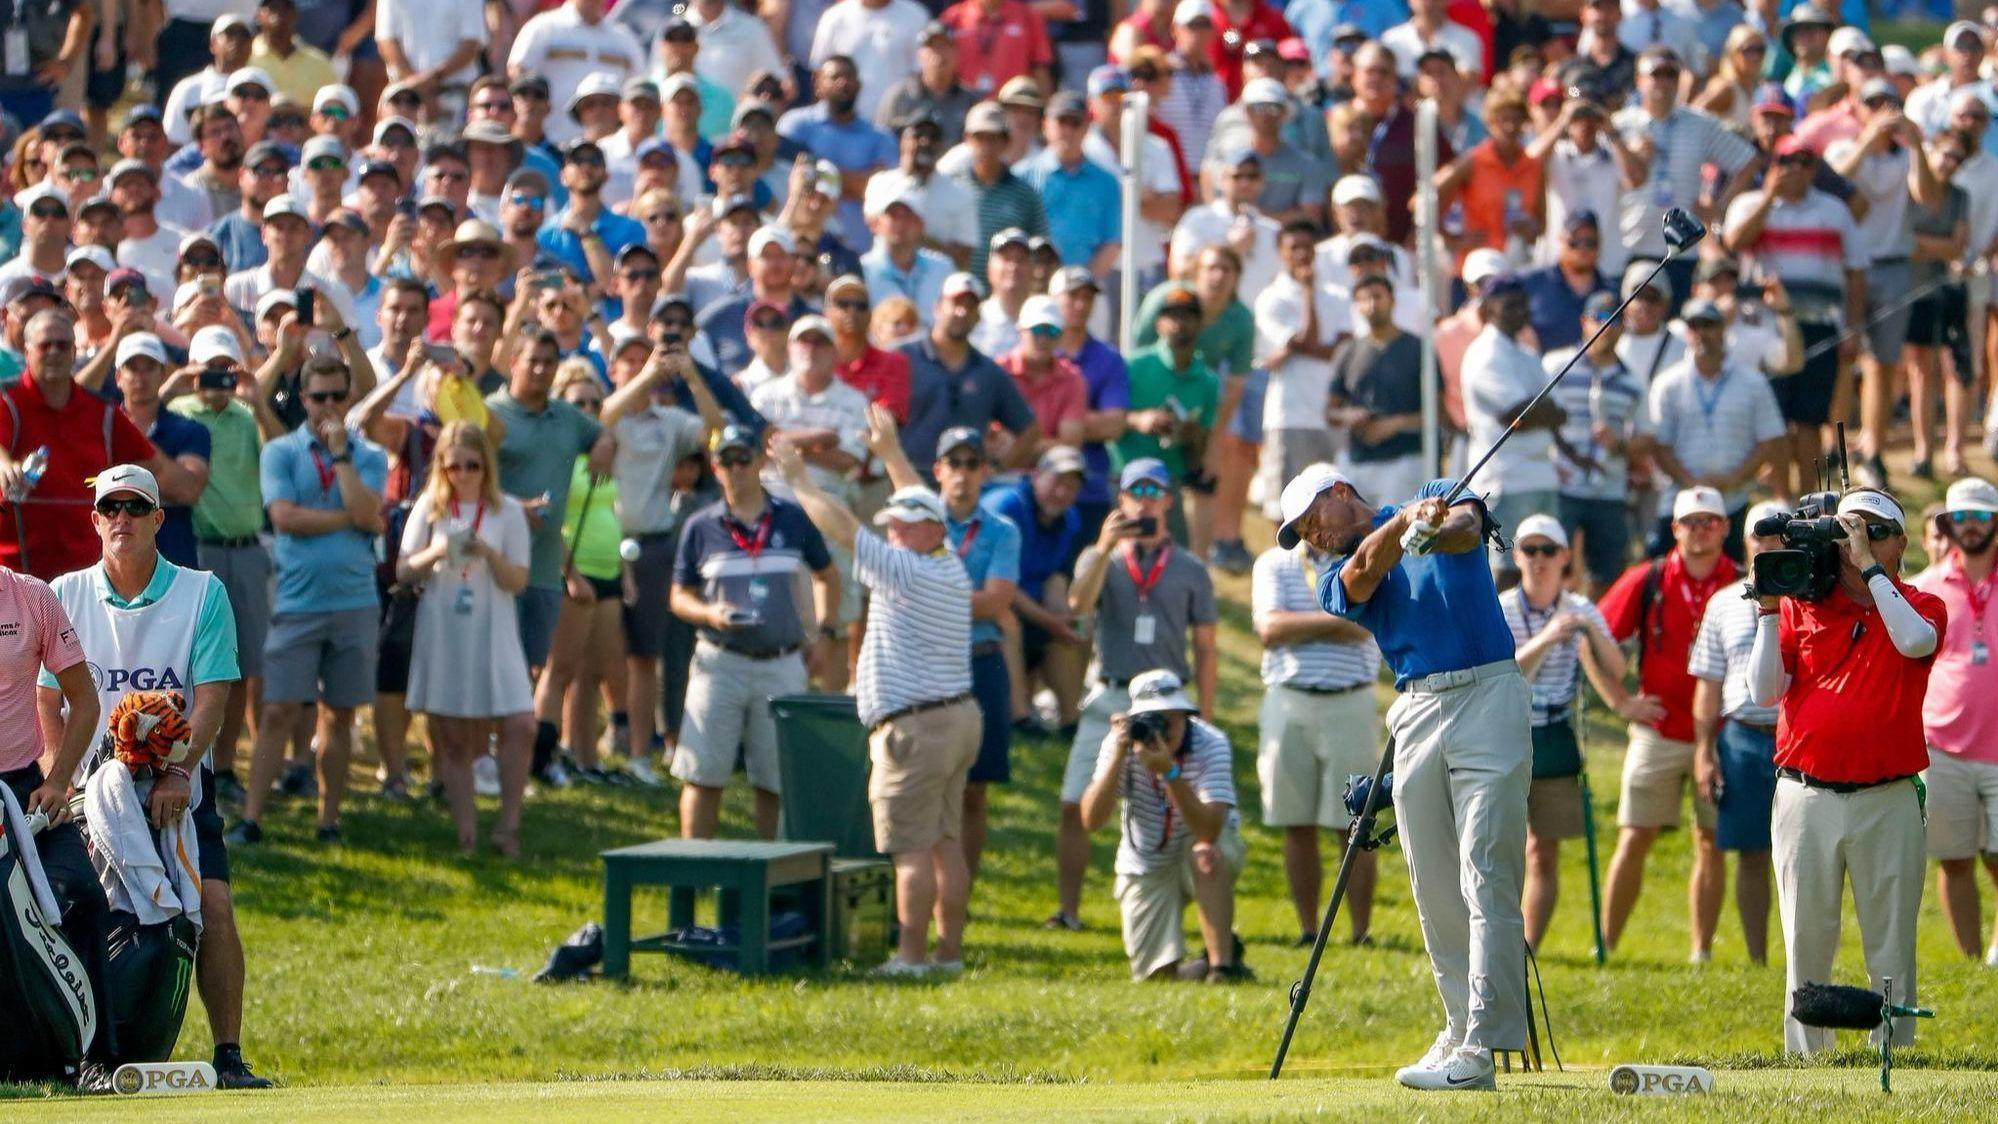 PGA Championship notes: Tiger Woods in contention, but he could have been closer